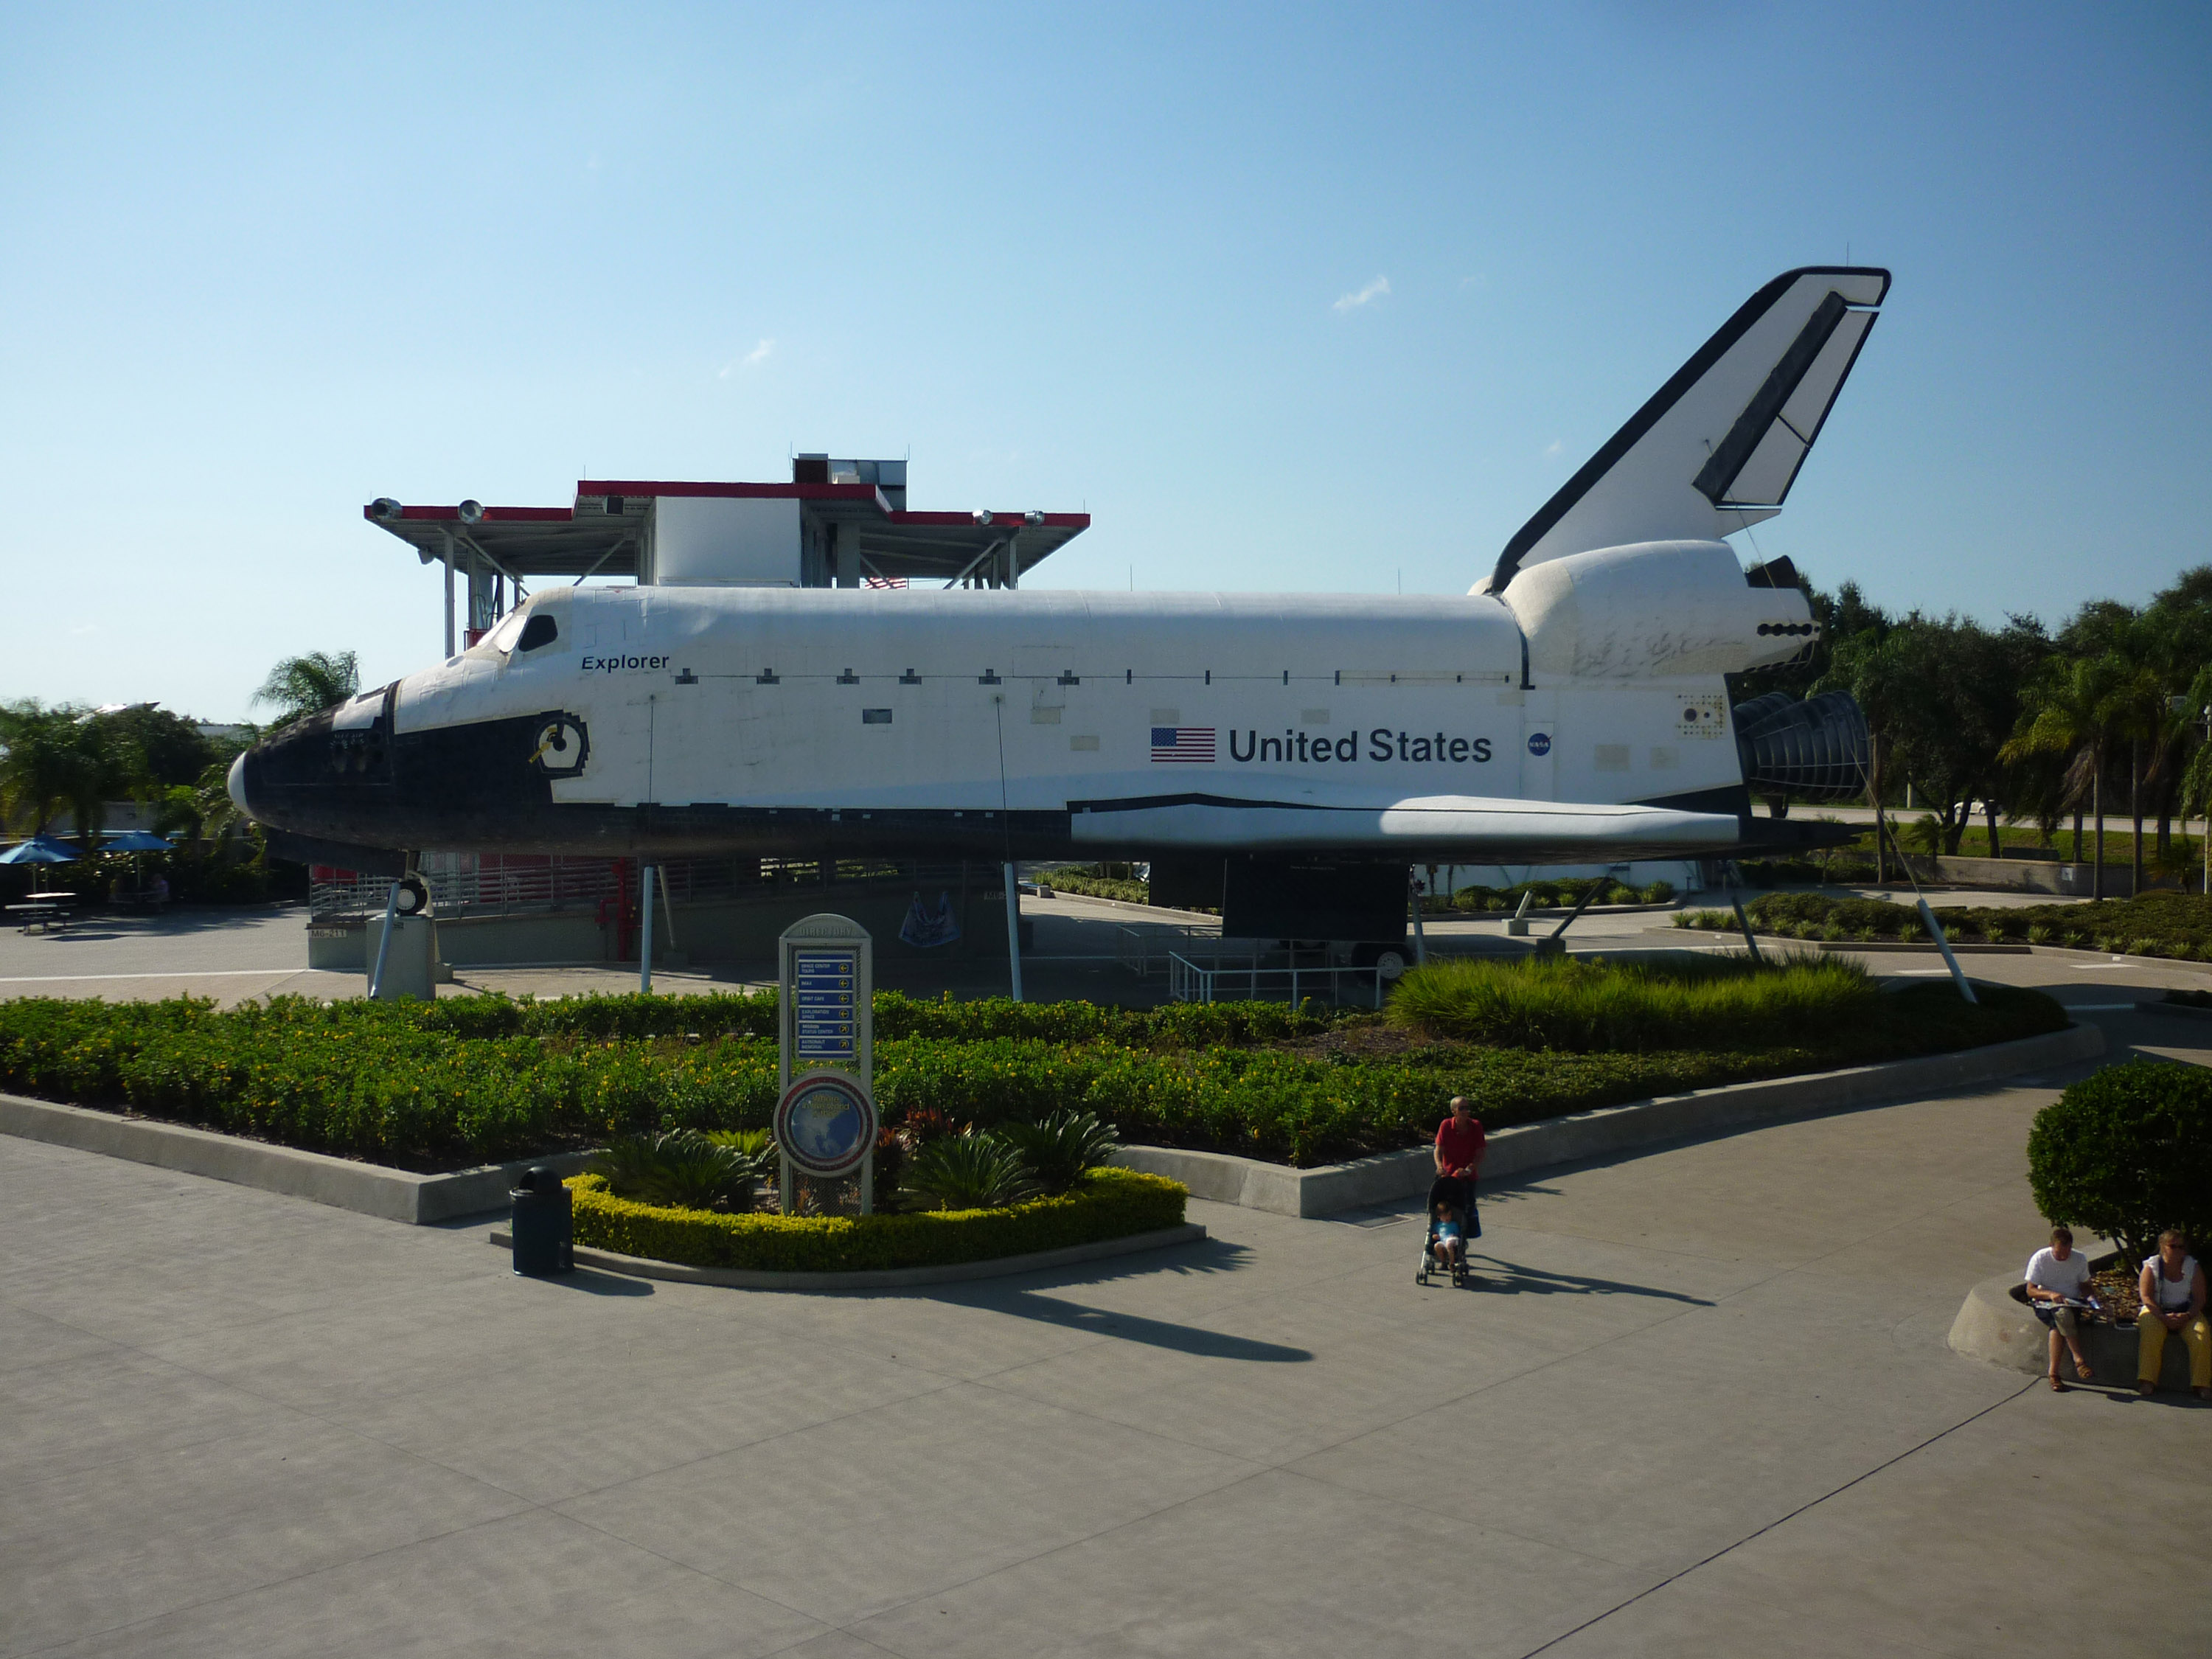 space shuttle explorer is real - photo #4